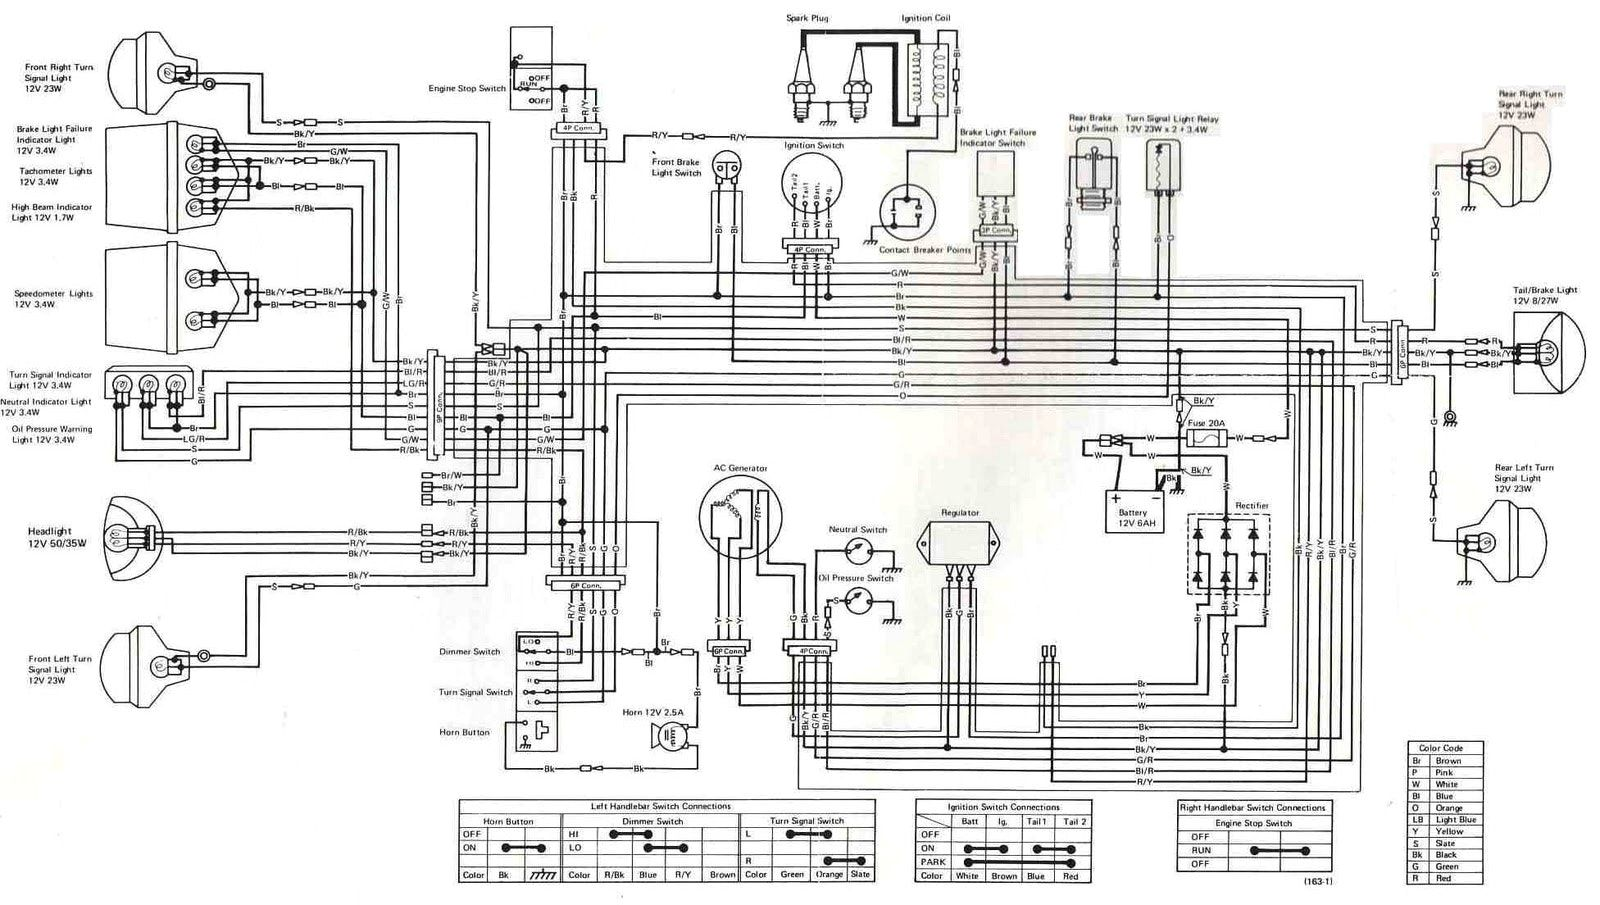 Kawasaki Mule 610 Wiring Diagram Kz400 Electrical